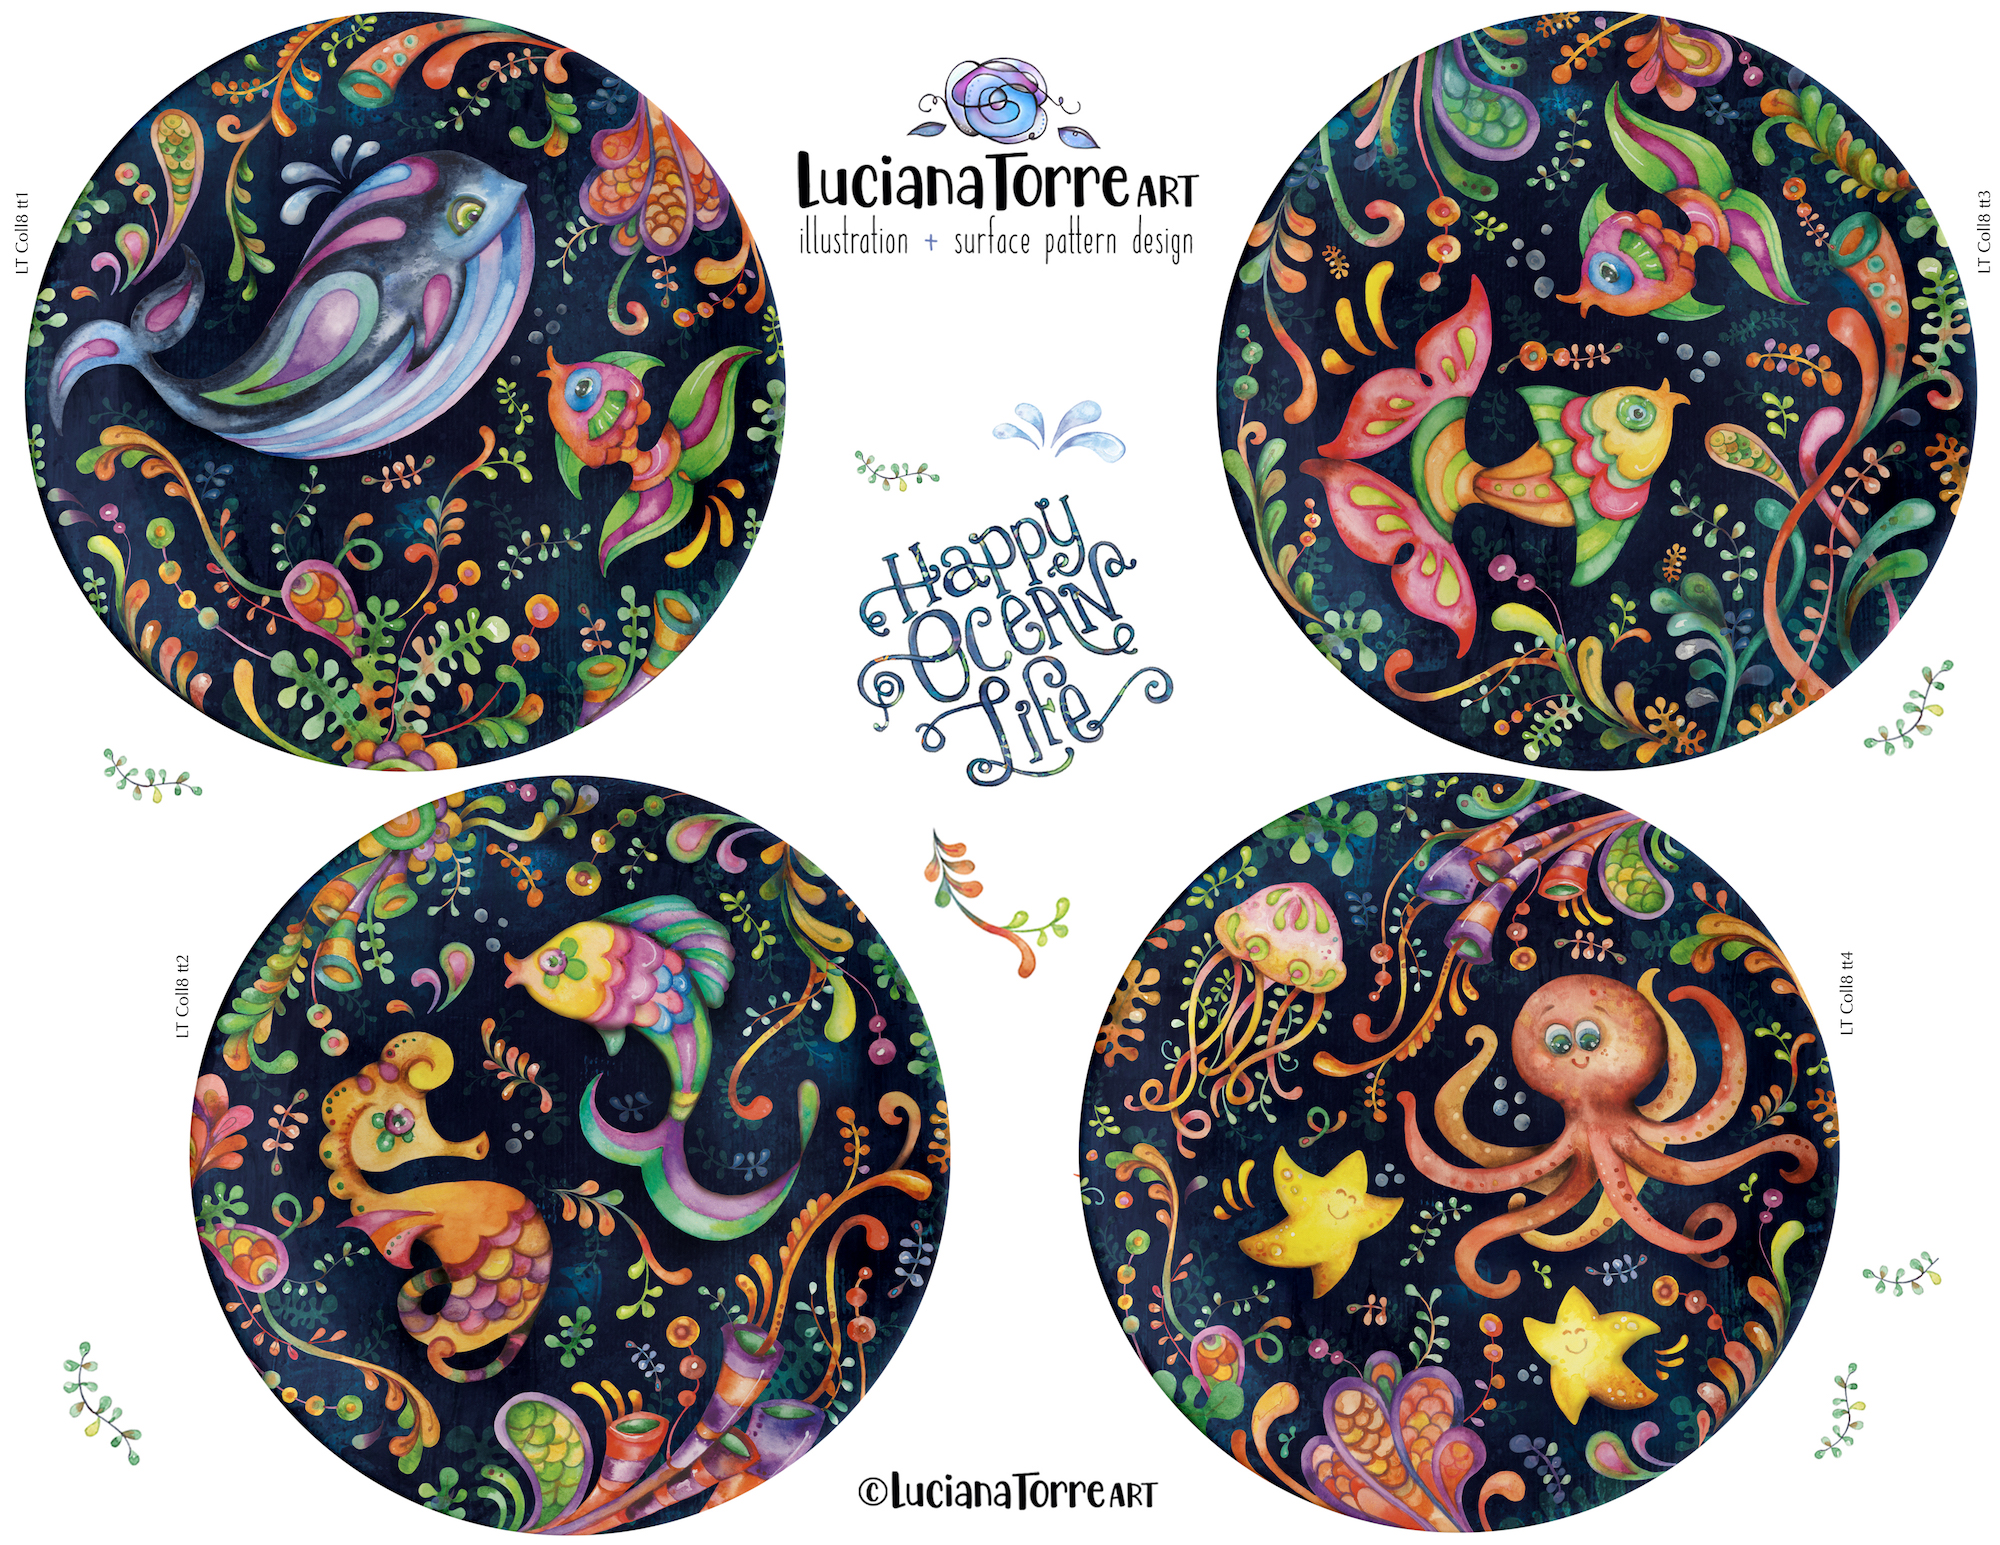 Luciana Torre Art tabletop for licensing